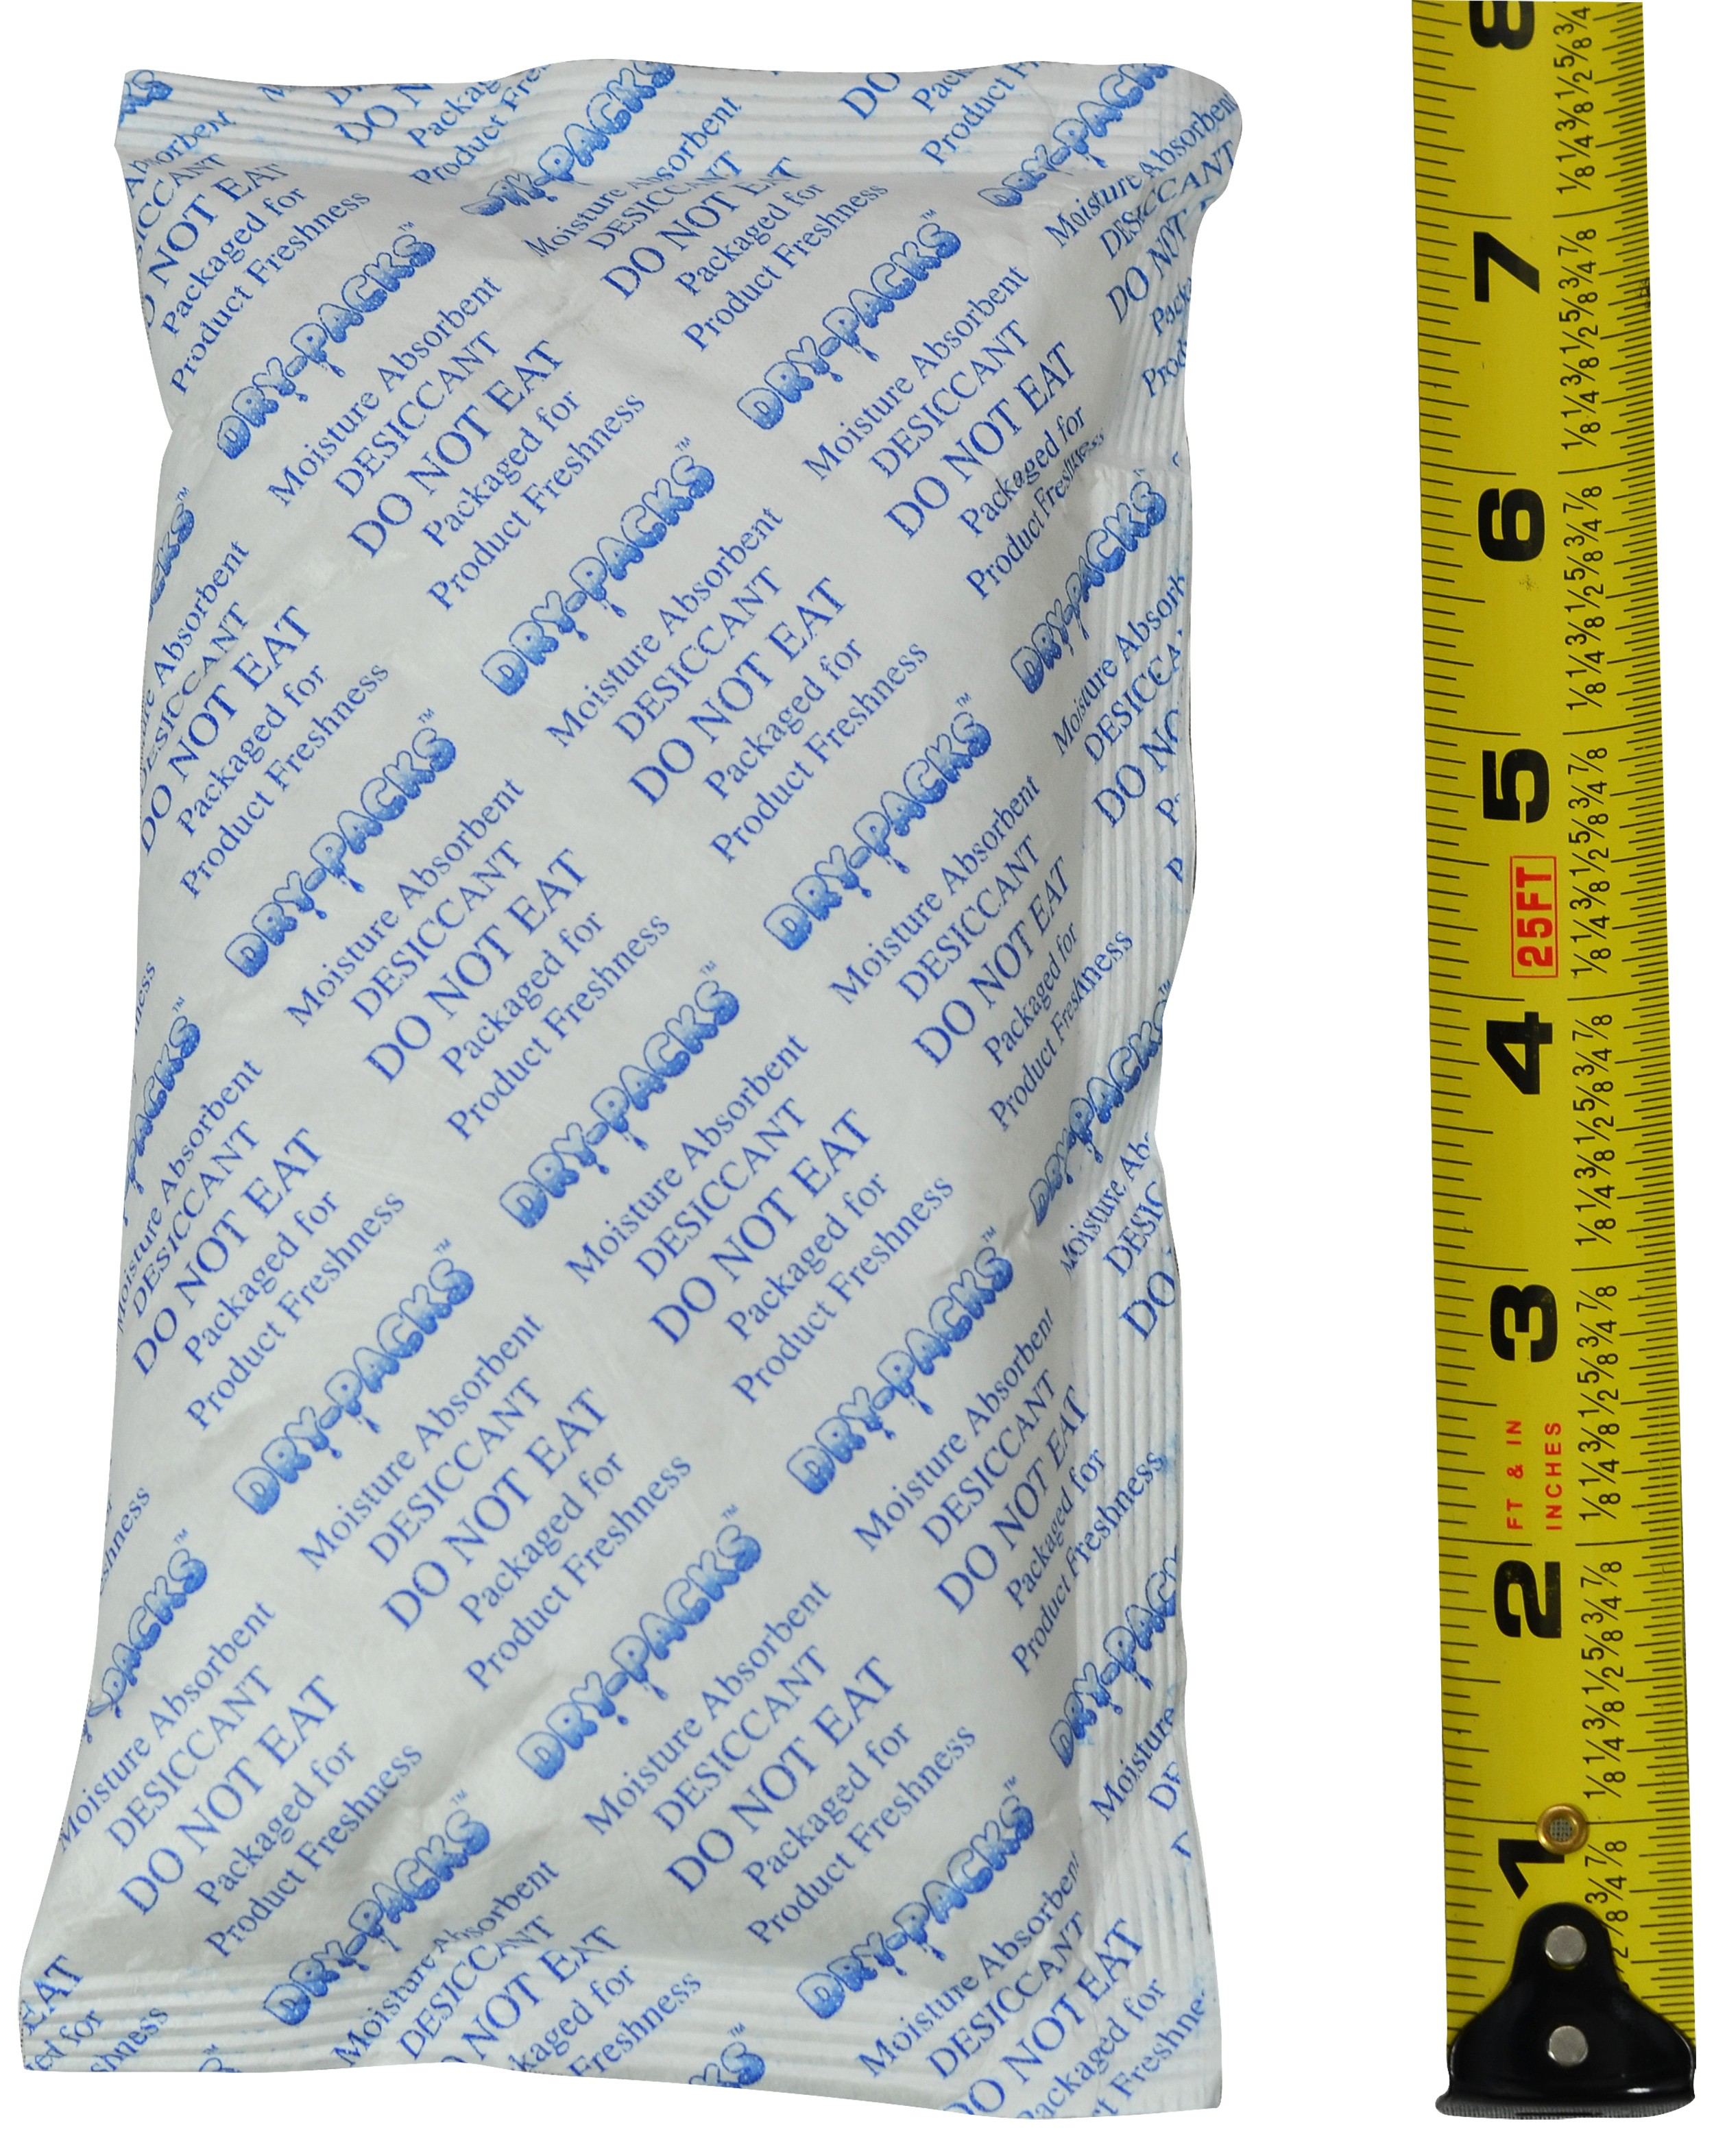 224 Gram (8 Units) Silica Gel Packet - Tyvek